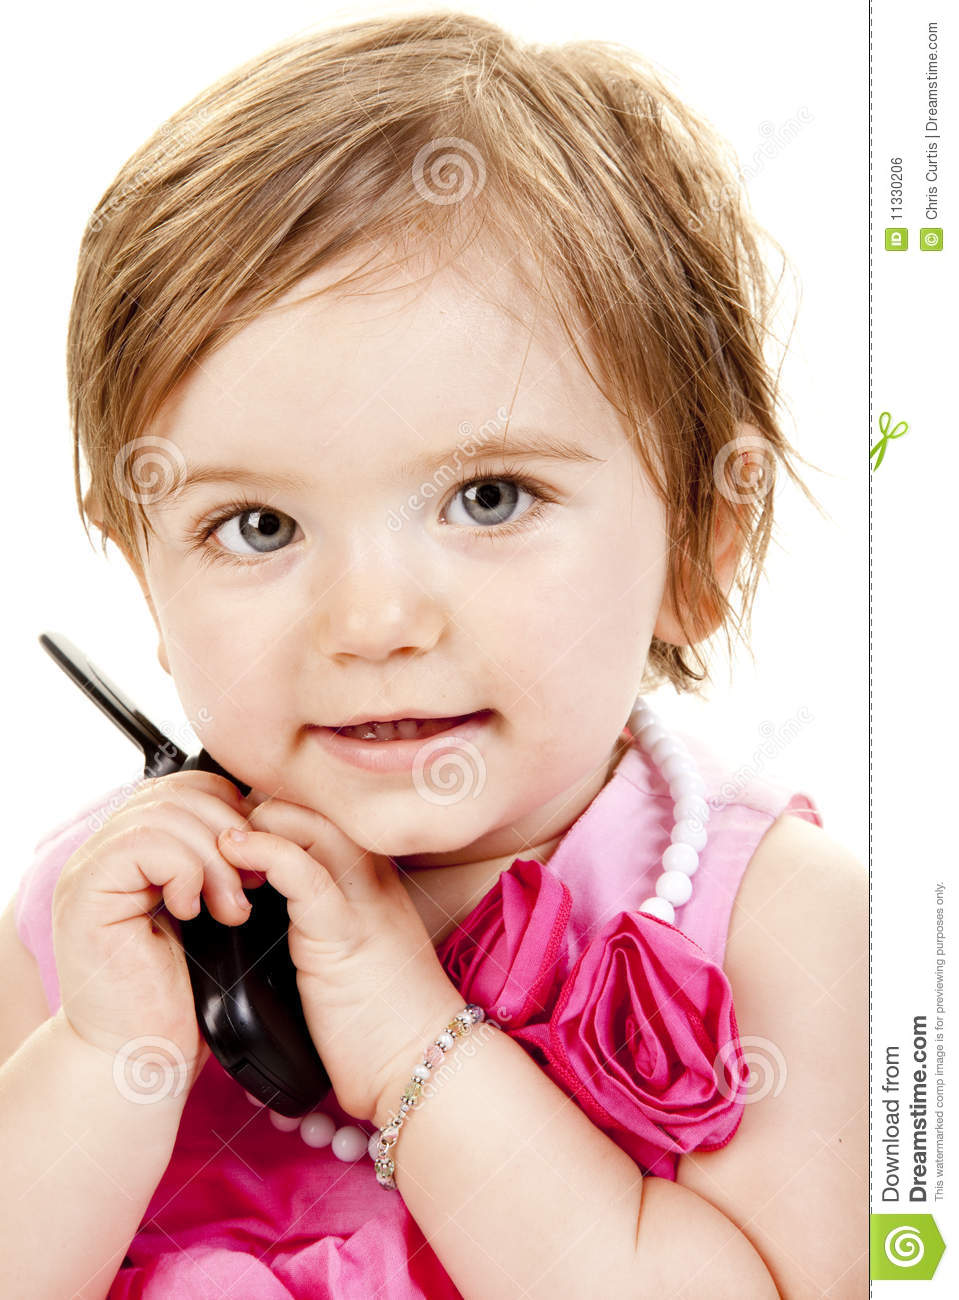 cute baby girl holding a cell phone stock photo - image of